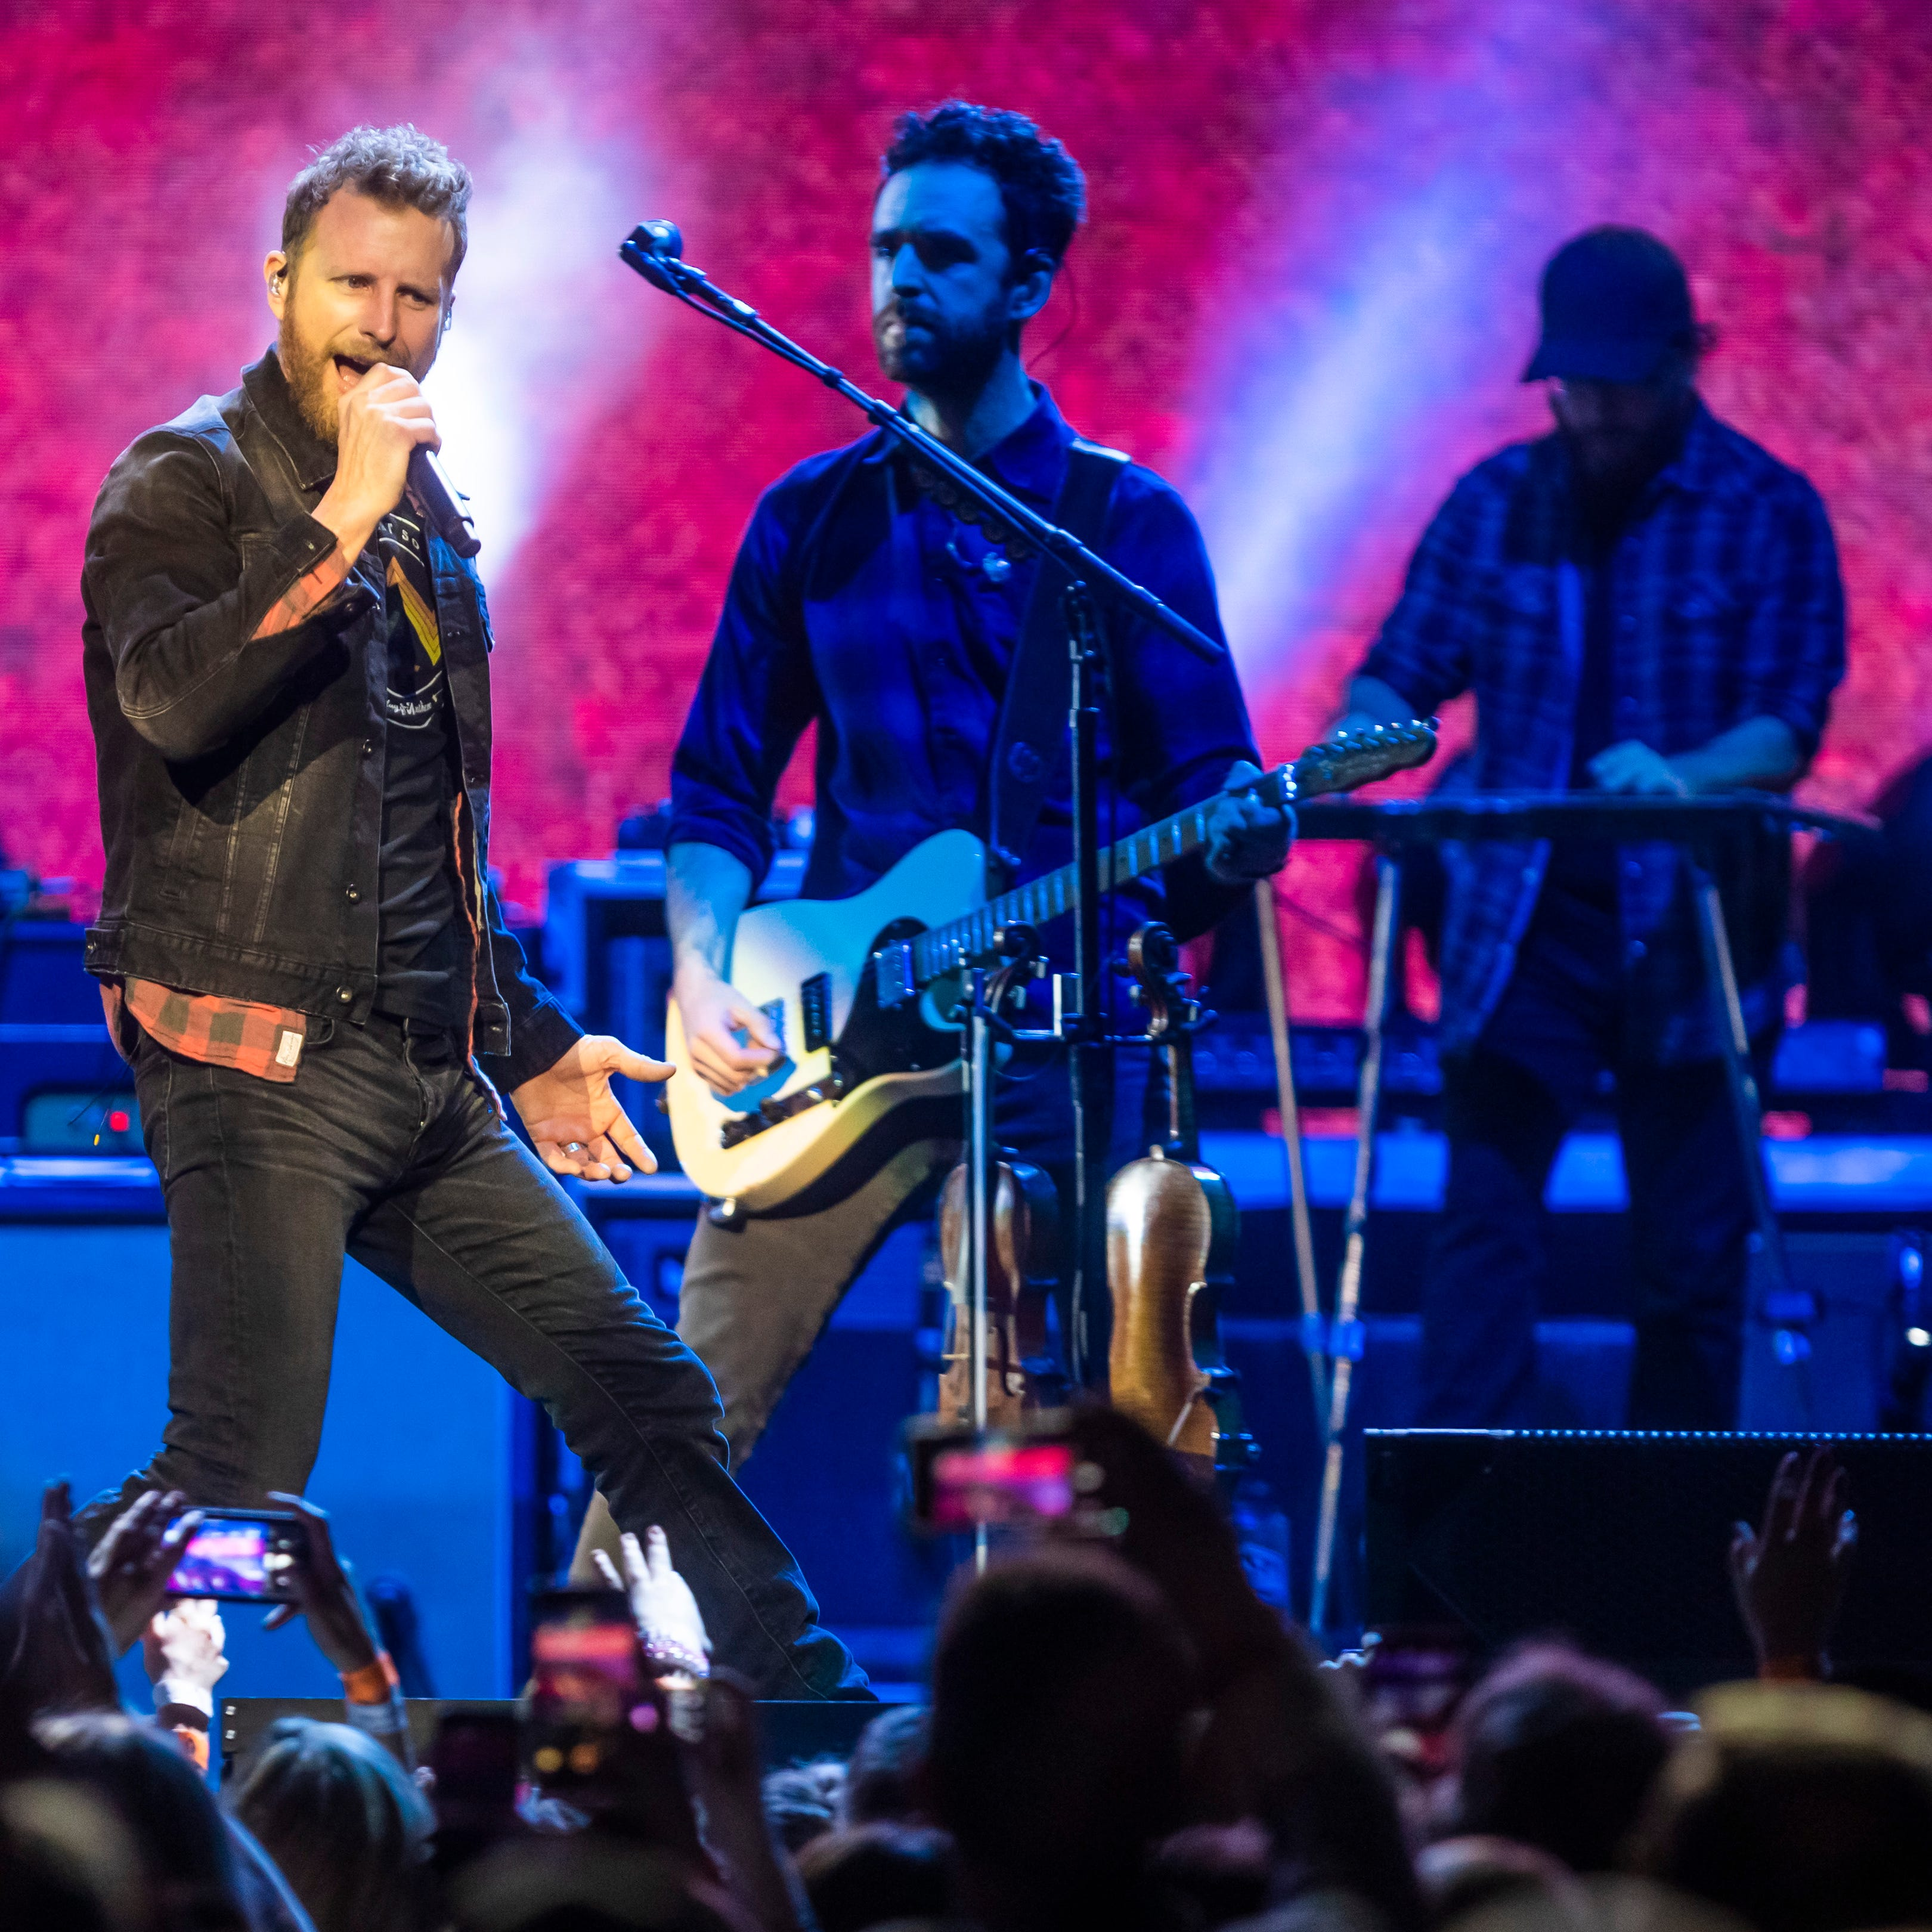 Dierks Bentley to host CMA Foundation's Music Teachers of Excellence Awards